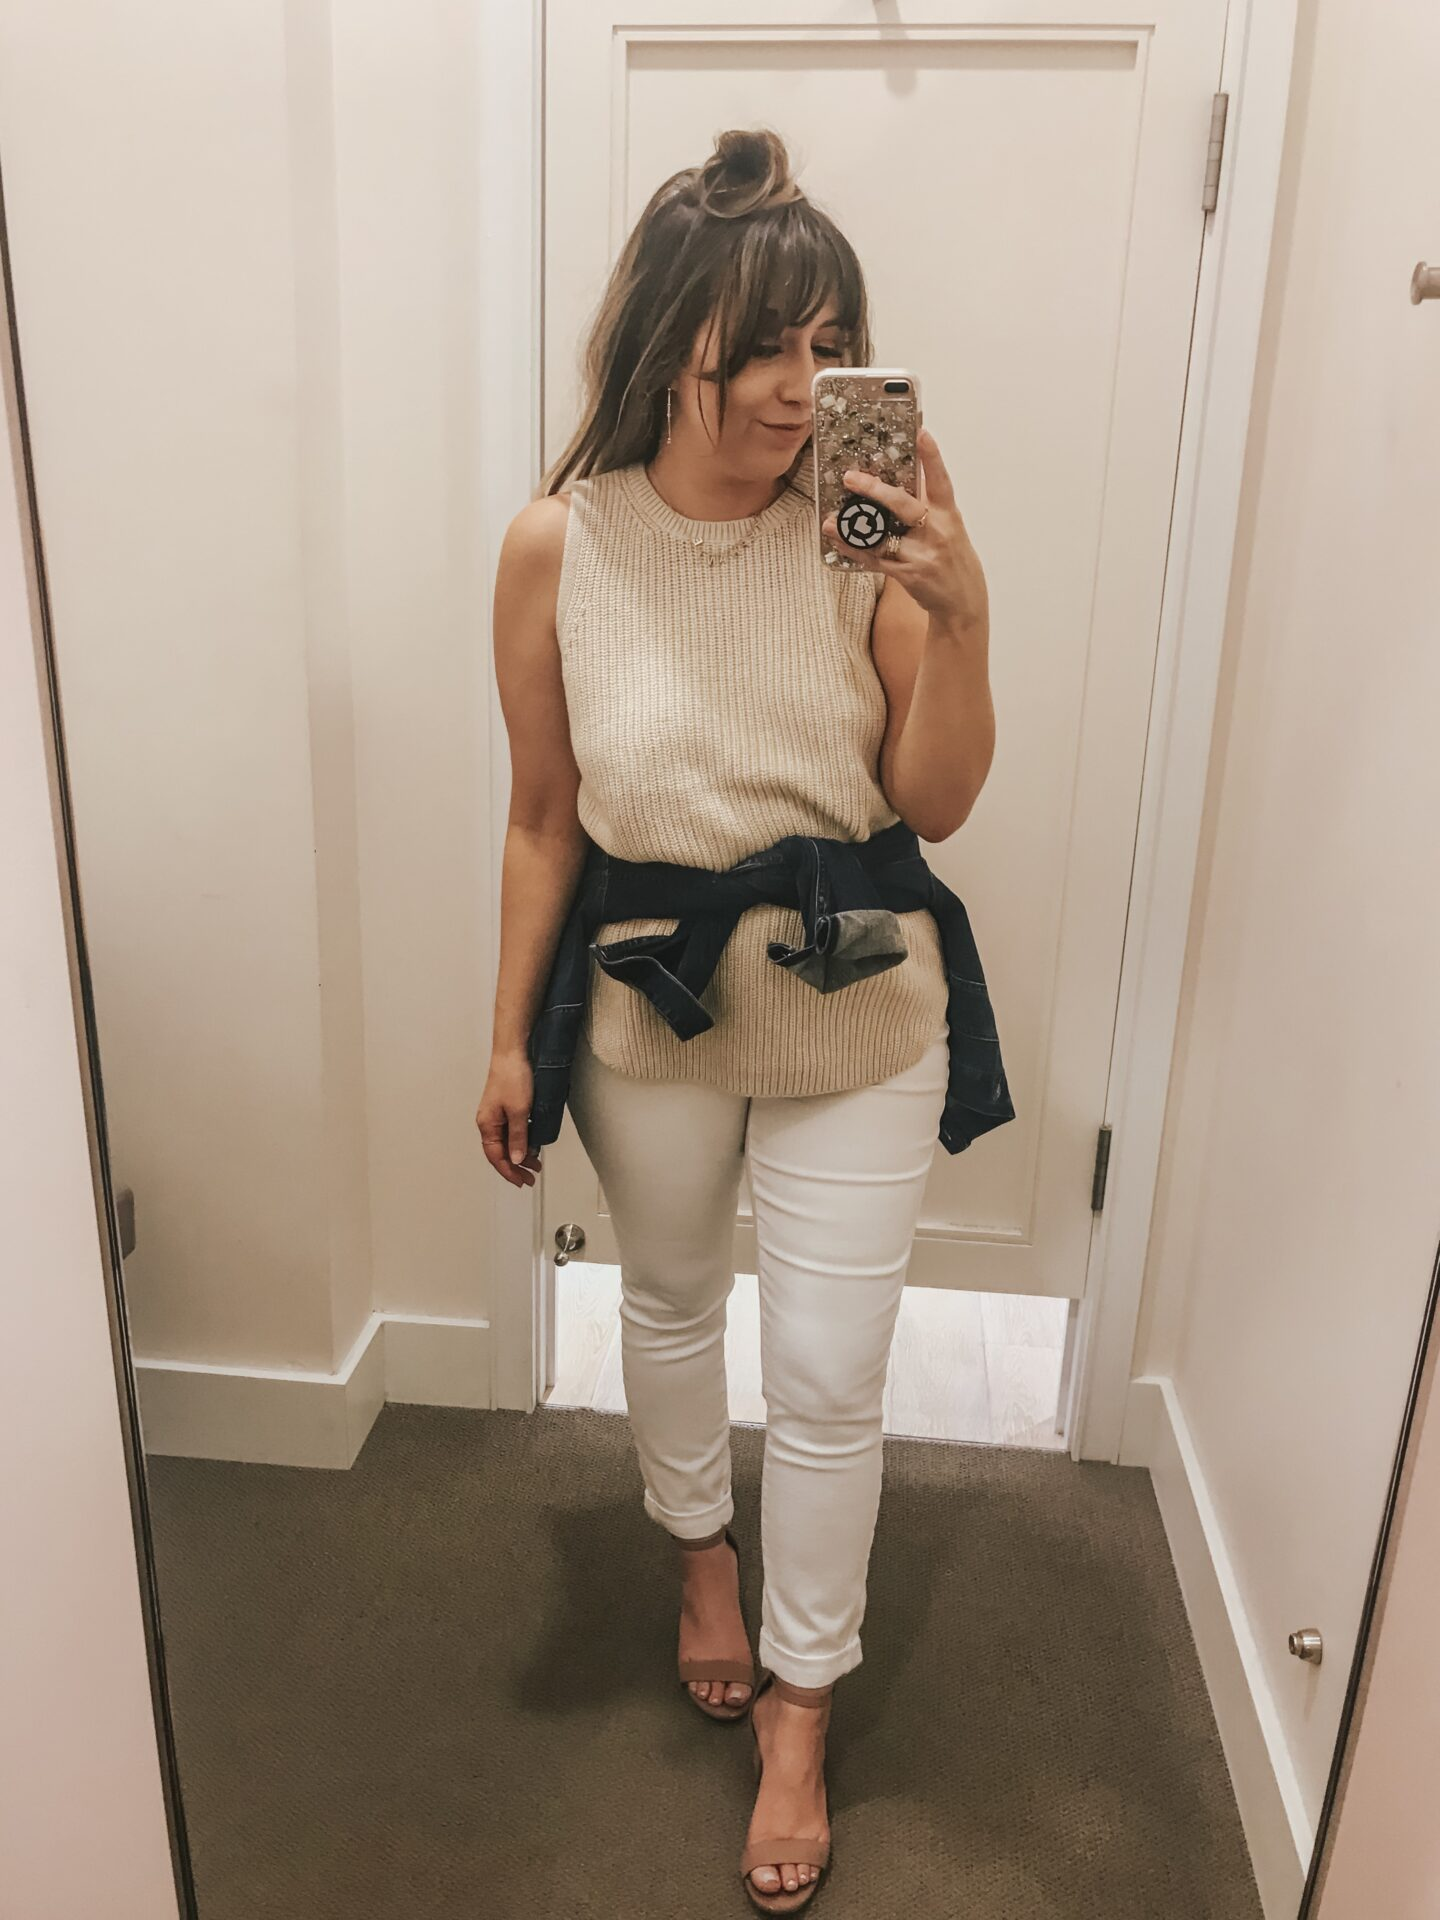 LOFT Spring - Sleeveless sweater and white jeans